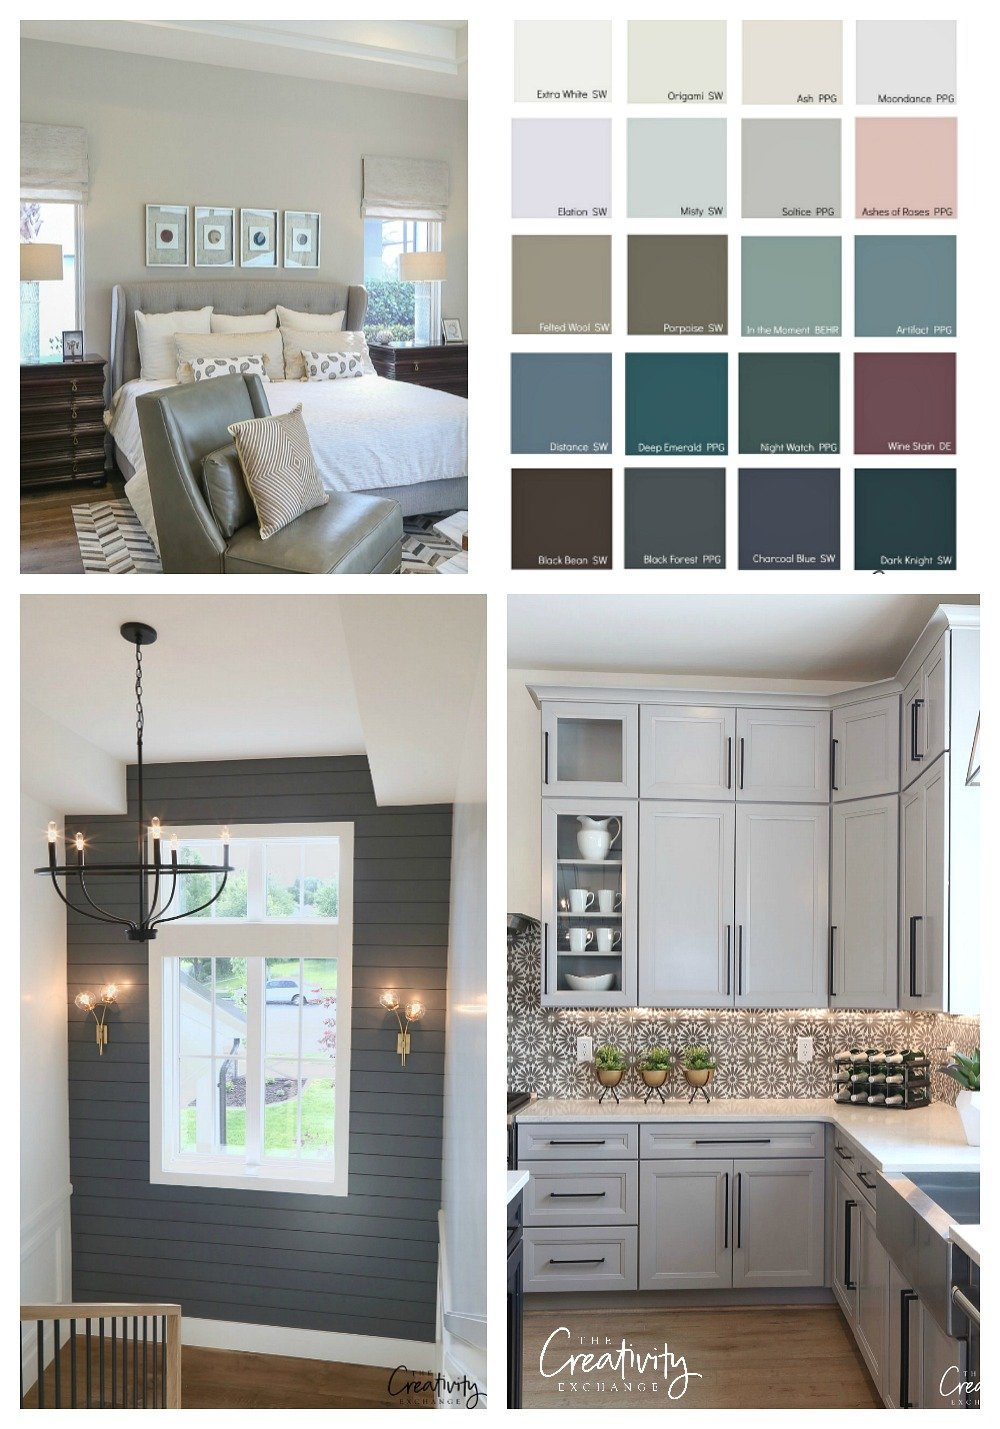 2019 paint color trends and forecasts - Best foyer colors 2018 ...